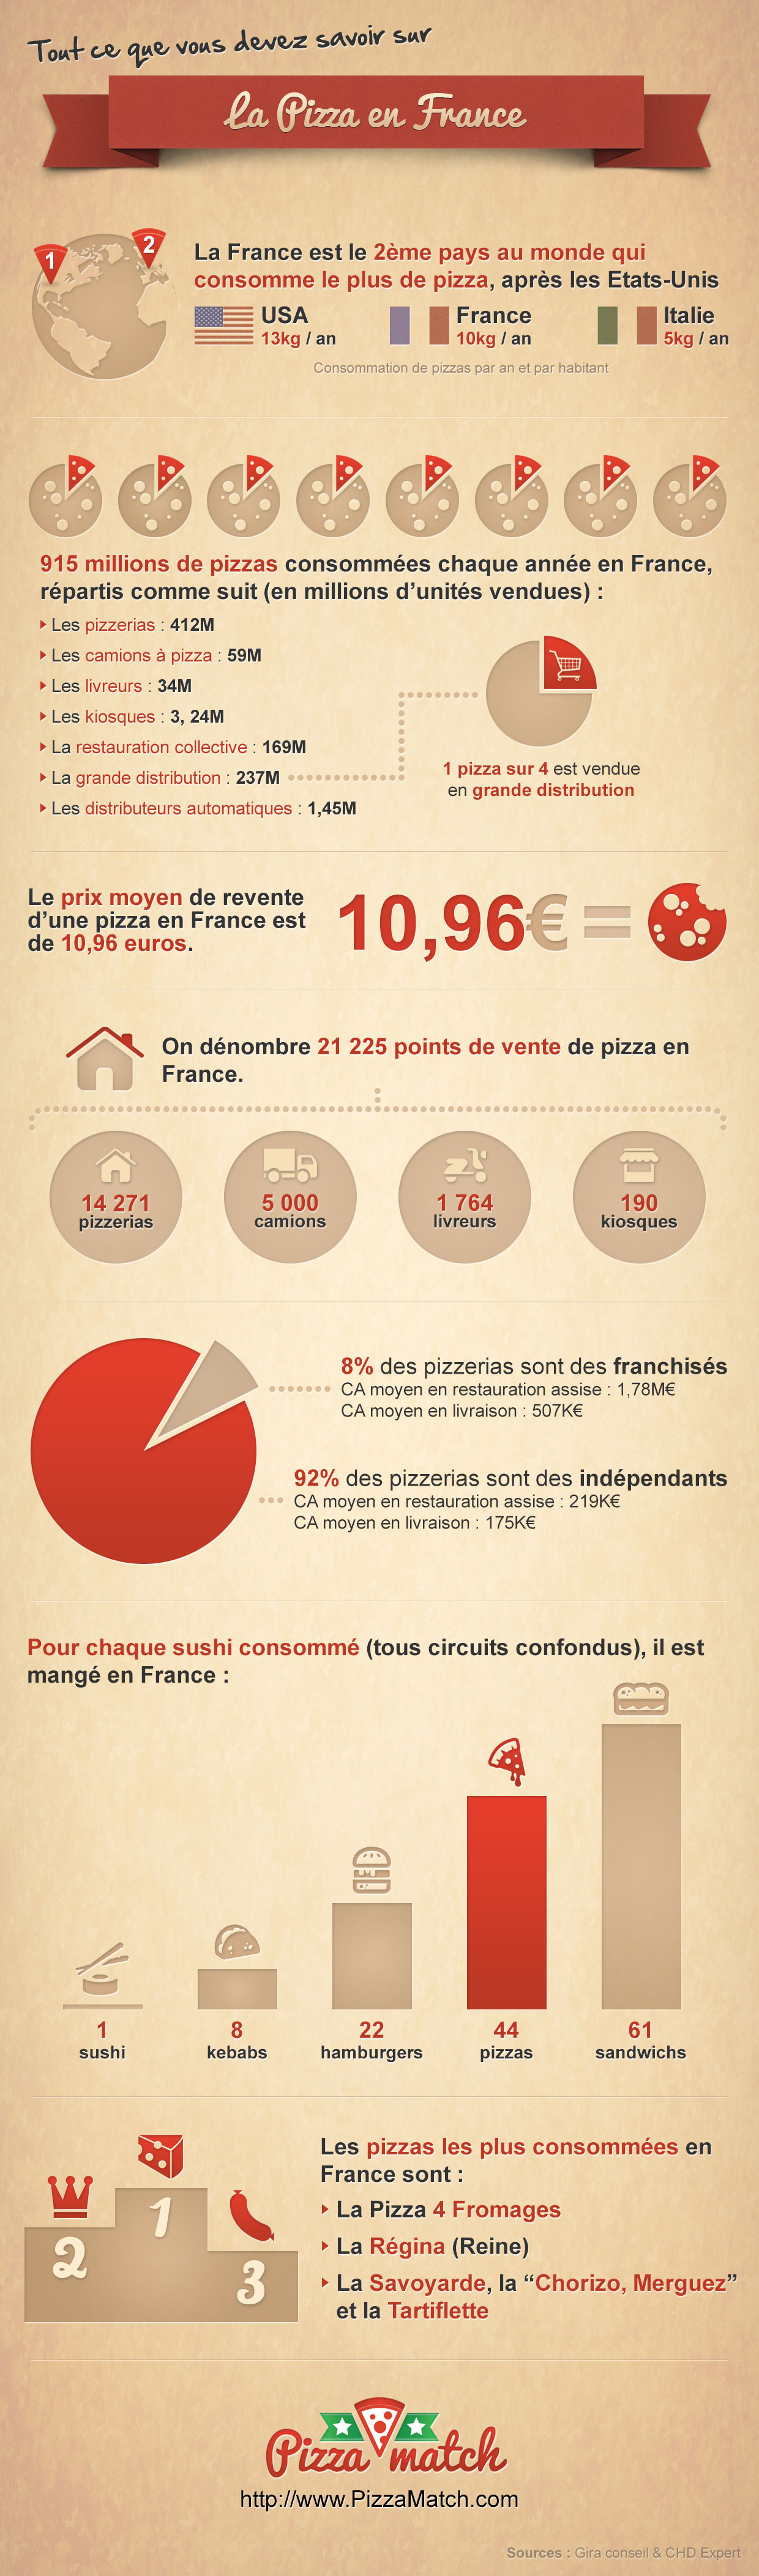 Infographie Pizza